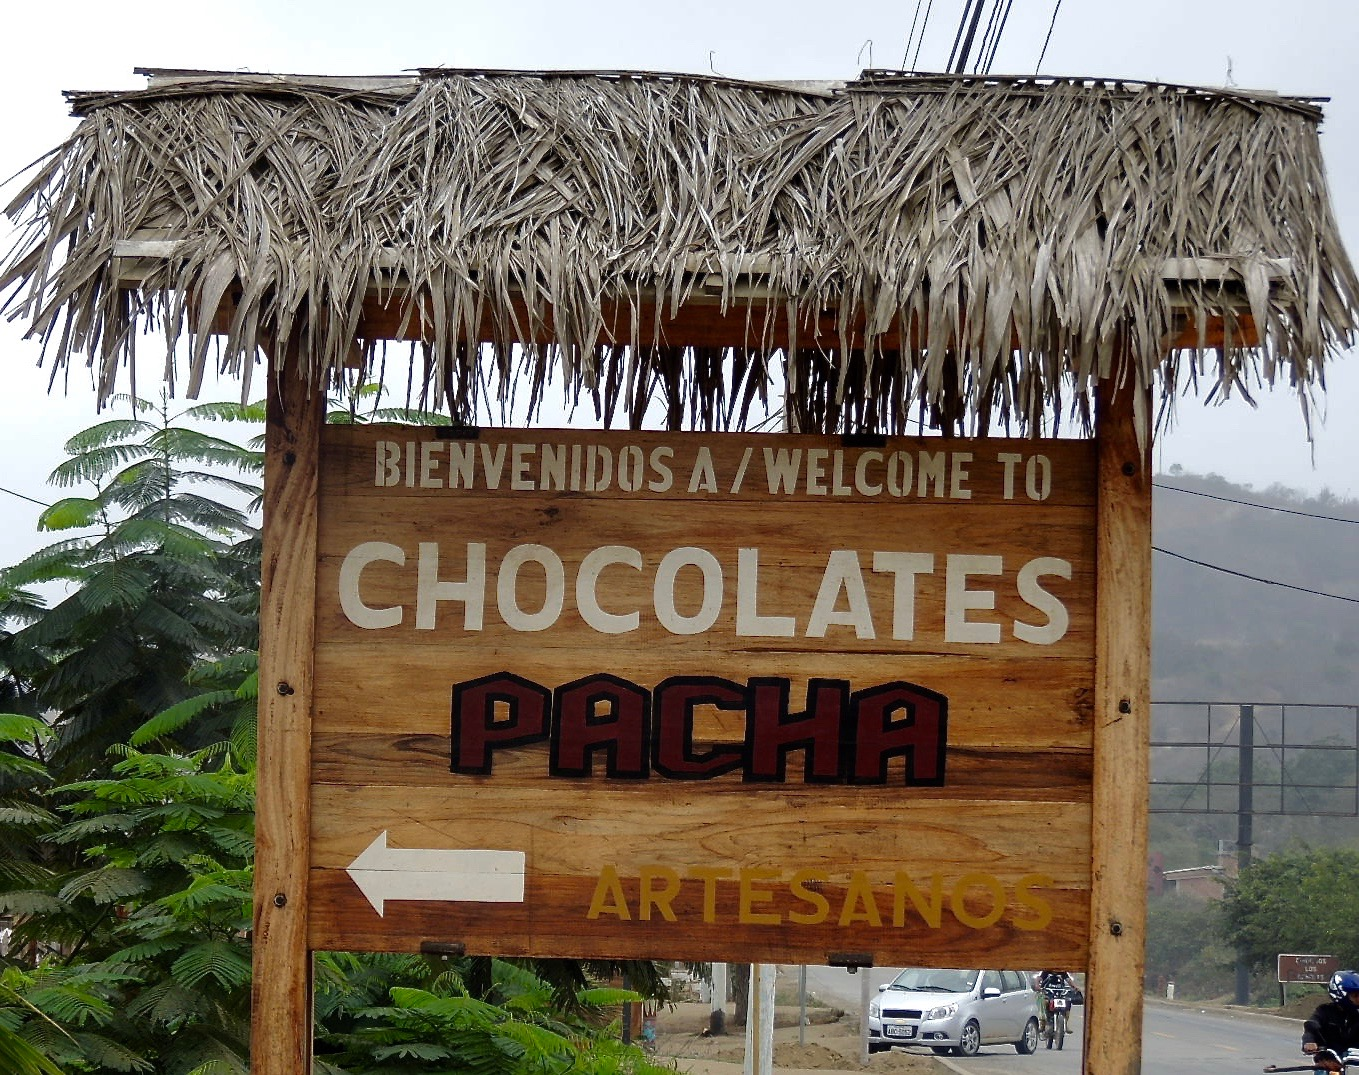 Pacha sign in front of chocolate factory.